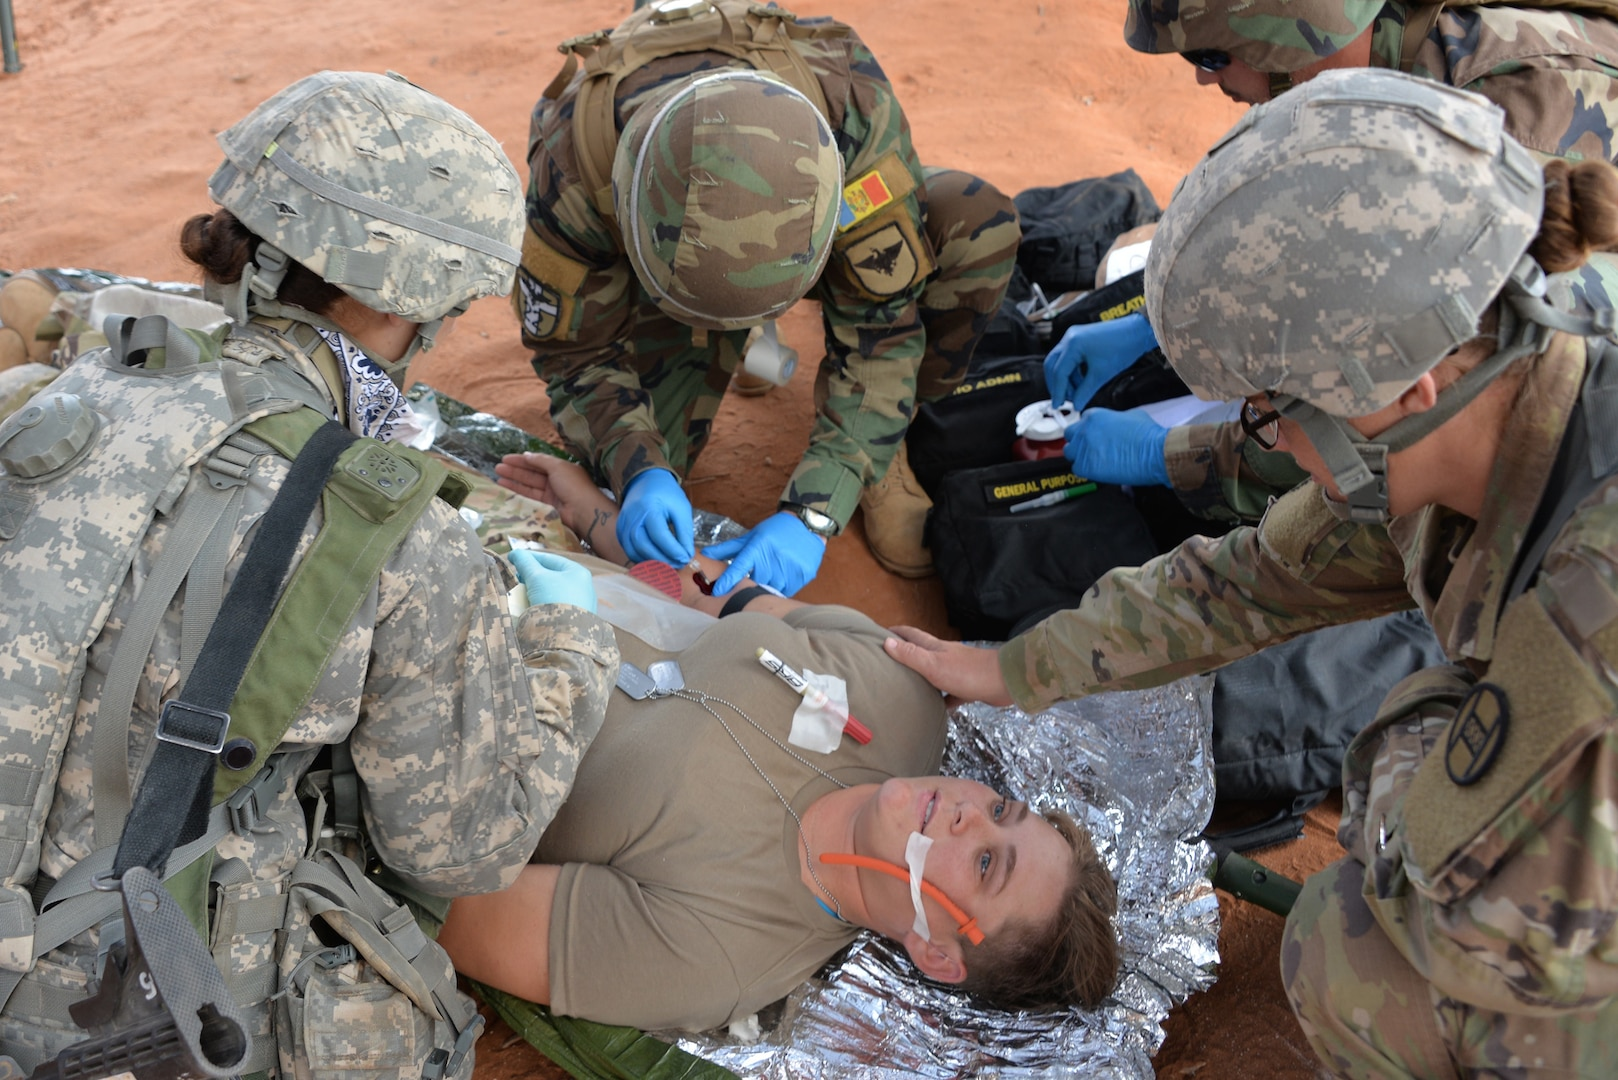 Combat medic soldiers with the 230th Brigade Support Battalion and Moldovan Combat Medics work together conducting life-like combat casualty care training with Soldiers injured in the battlefield.  Soldiers train on medical technique and medical intervention at a training area near Ft. Bliss, Texas, during the 30th Armored Brigade's eXportable Combat Training Capability (XCTC) exercise, August 6 – 21, 2018.